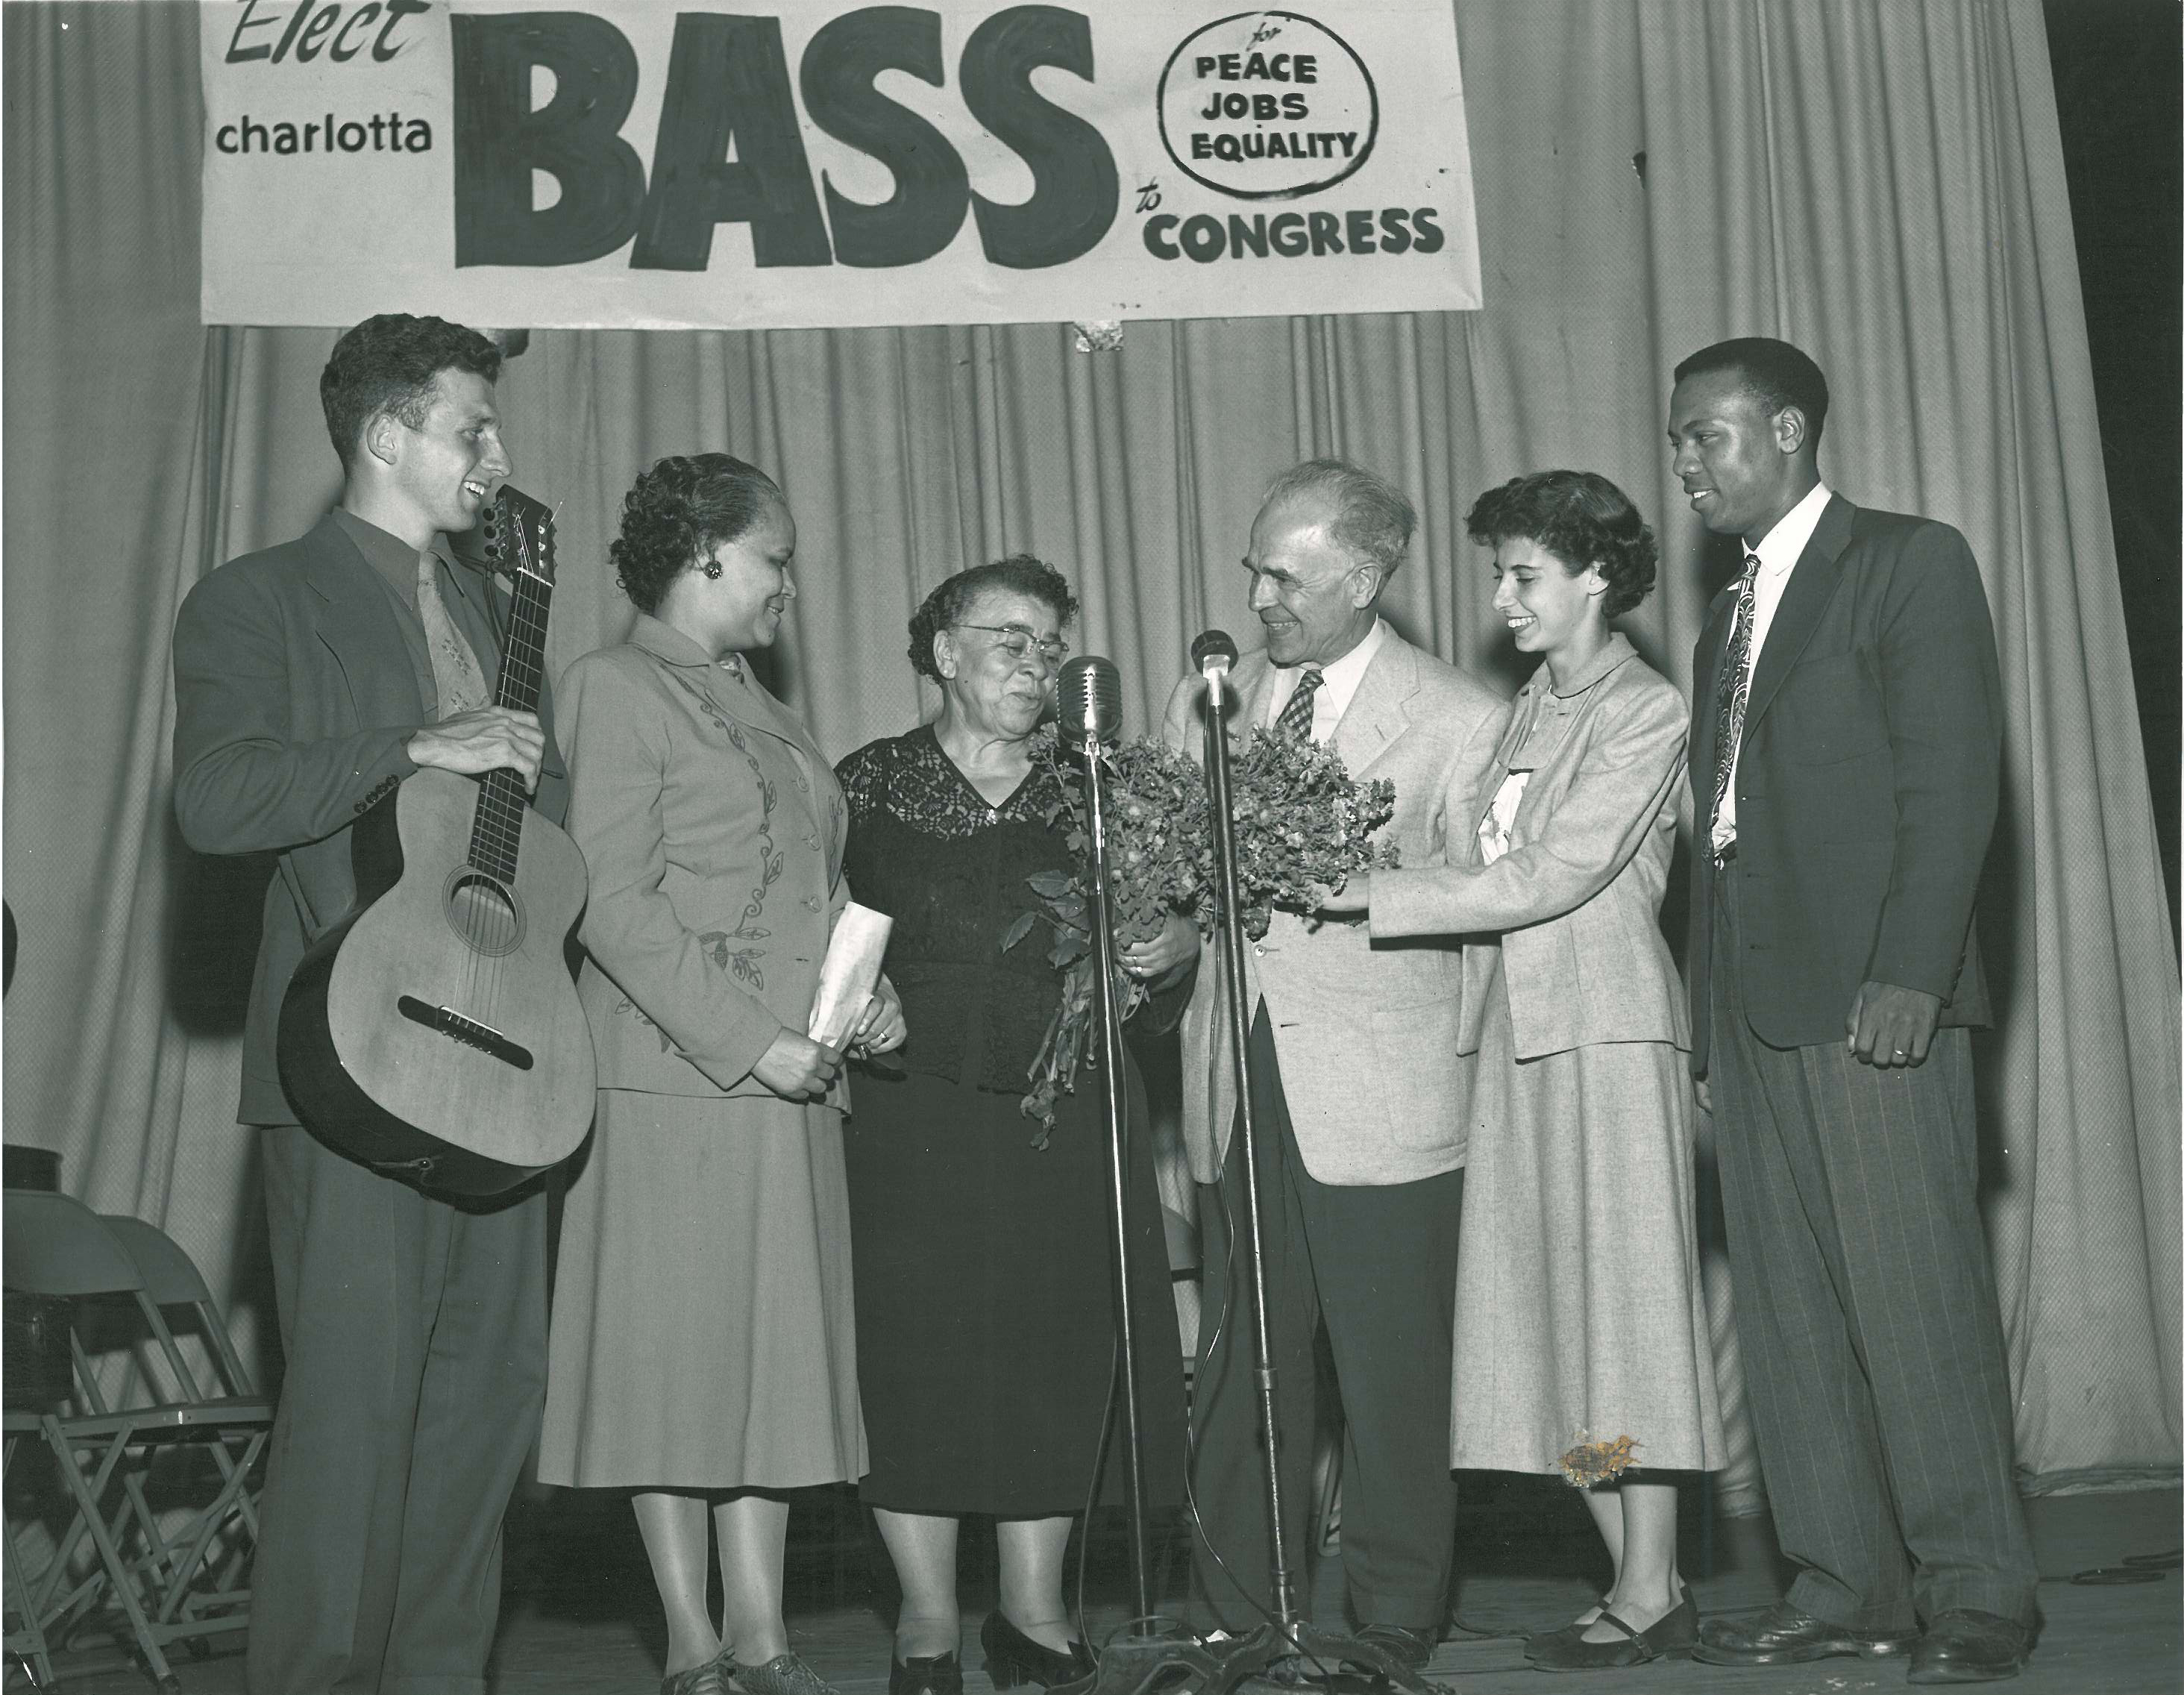 Figure 6.2. Charlotta Bass receives a bouquet of flowers at a congressional campaign rally in 1950. To her right is Reuben Borough, Progressive Party candidate for California treasurer; on the left is the folksinger Ernie Lieberman. Credit: Charlotta Bass Collection, Southern California Library (Los Angeles).